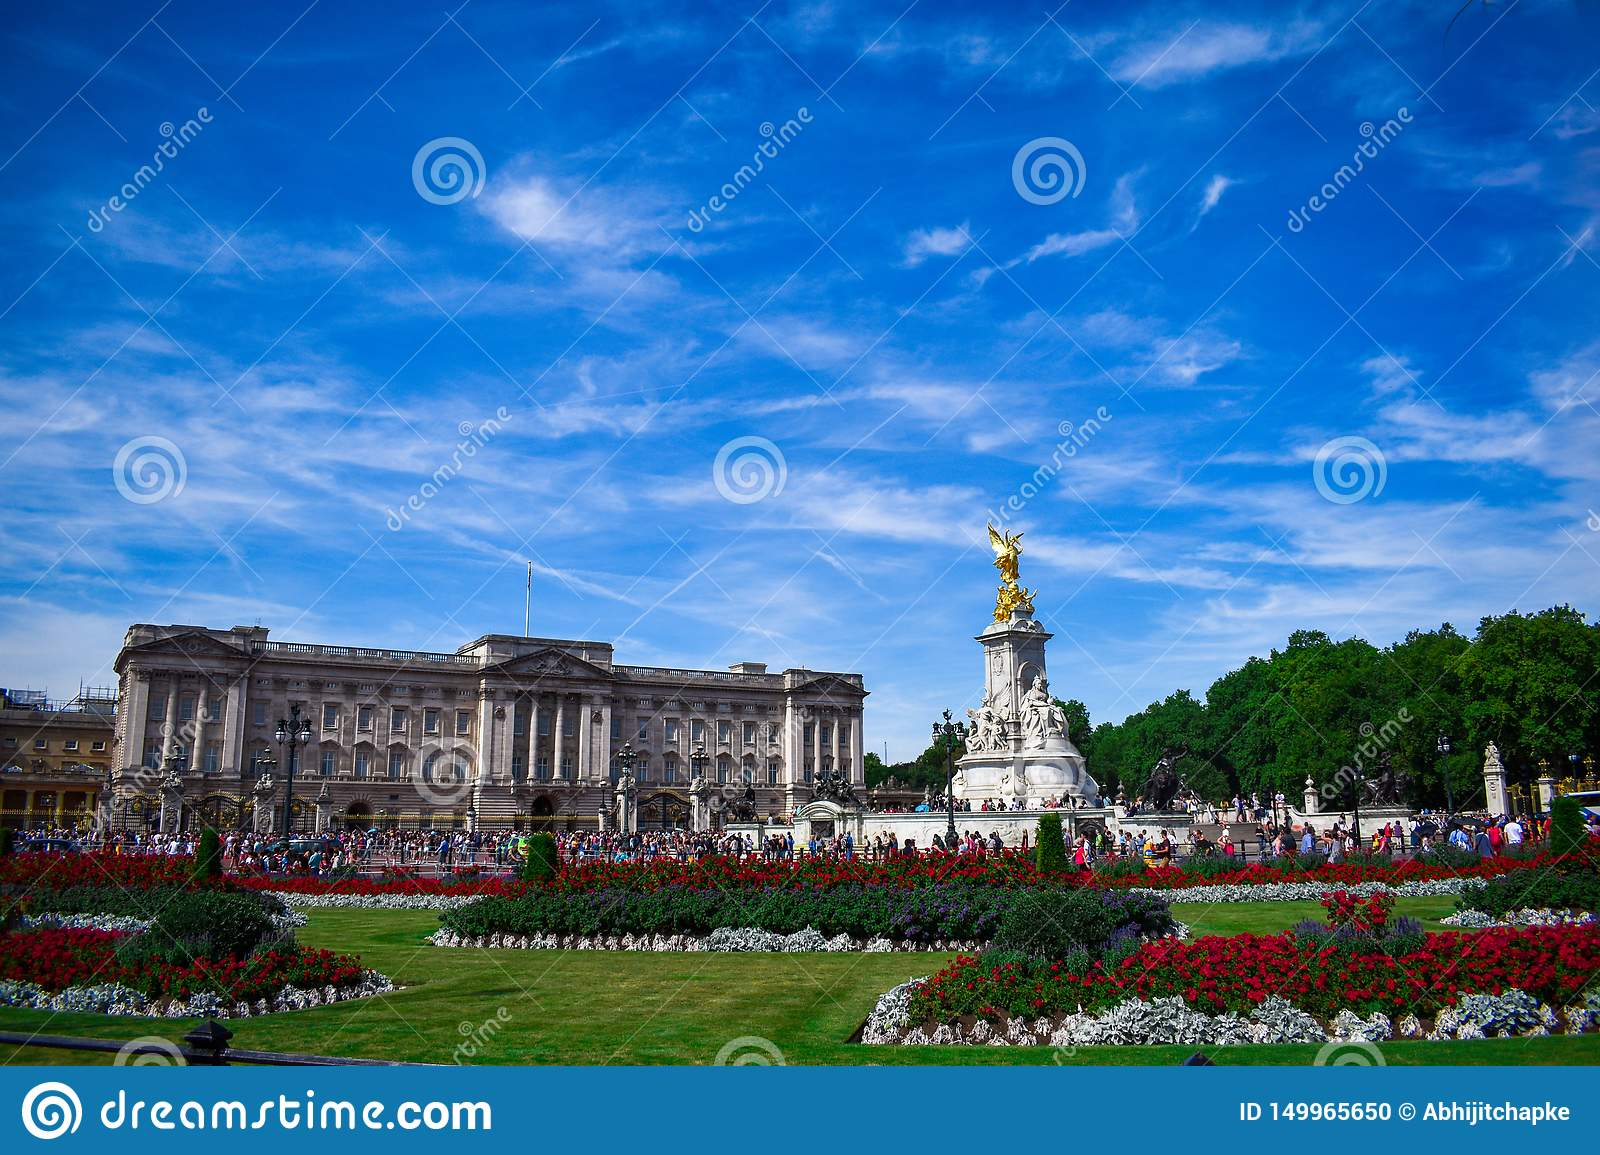 Buckingham Palace with Monument. Full view of Buckingham Palace during sunrise.Buckingham palace and the Victoria memorial with a